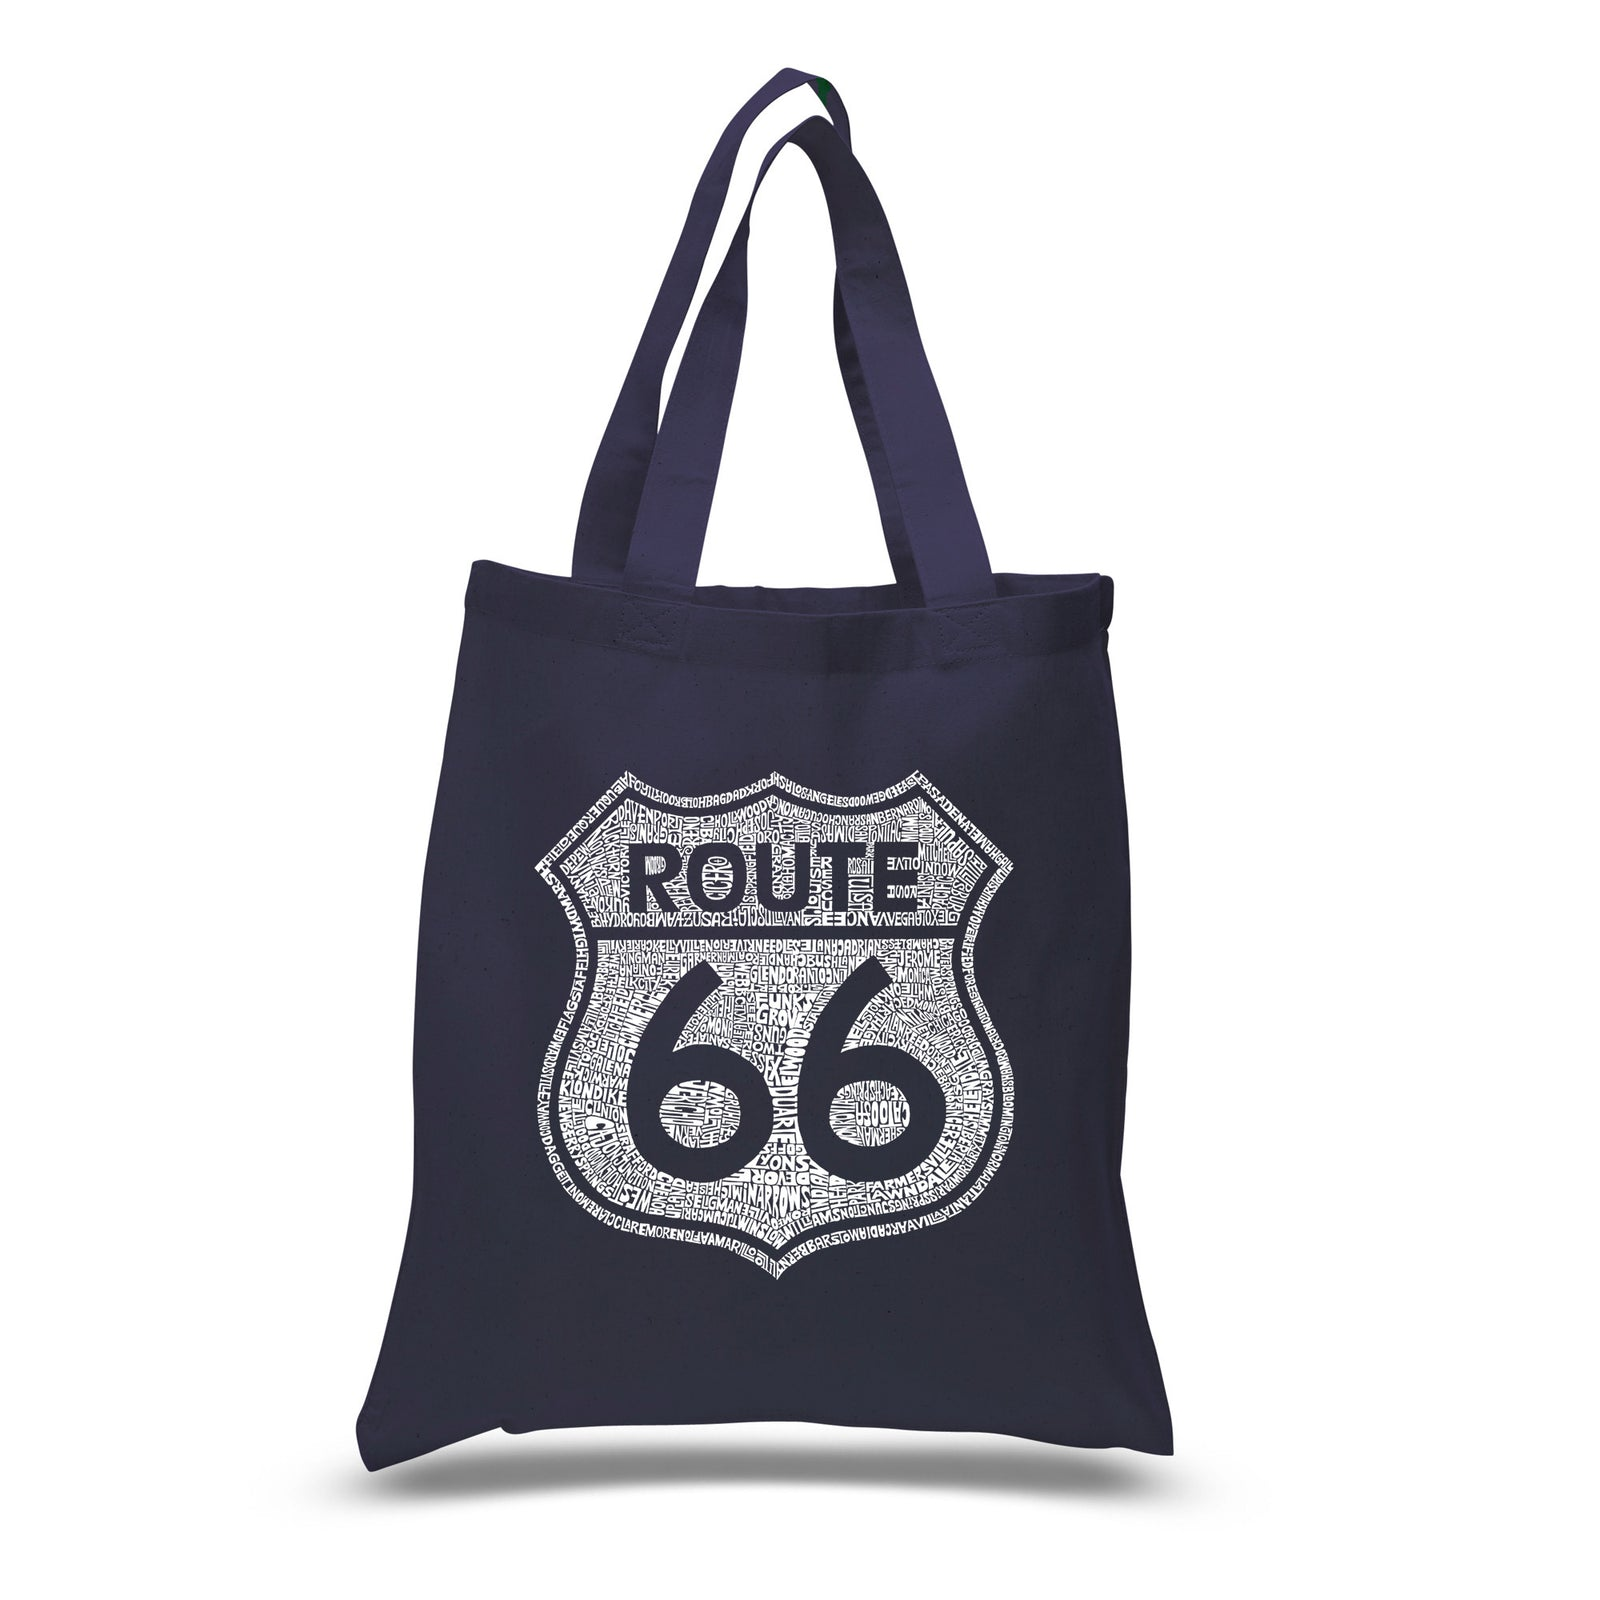 Small Tote Bag - CITIES ALONG THE LEGENDARY ROUTE 66